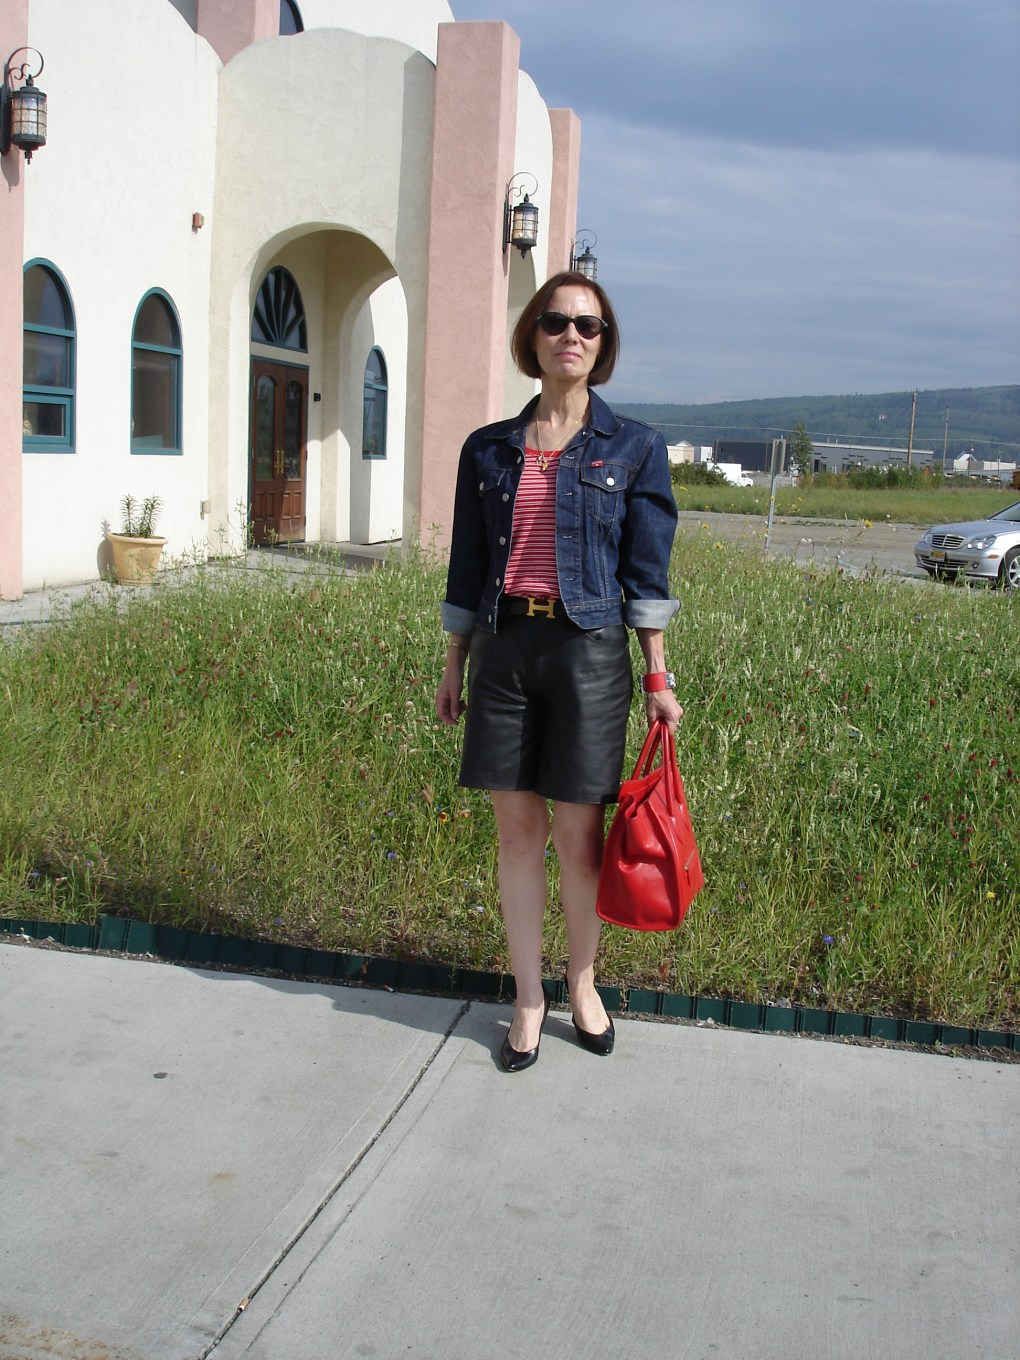 #over40fashion mature red, white, blue and black outfit